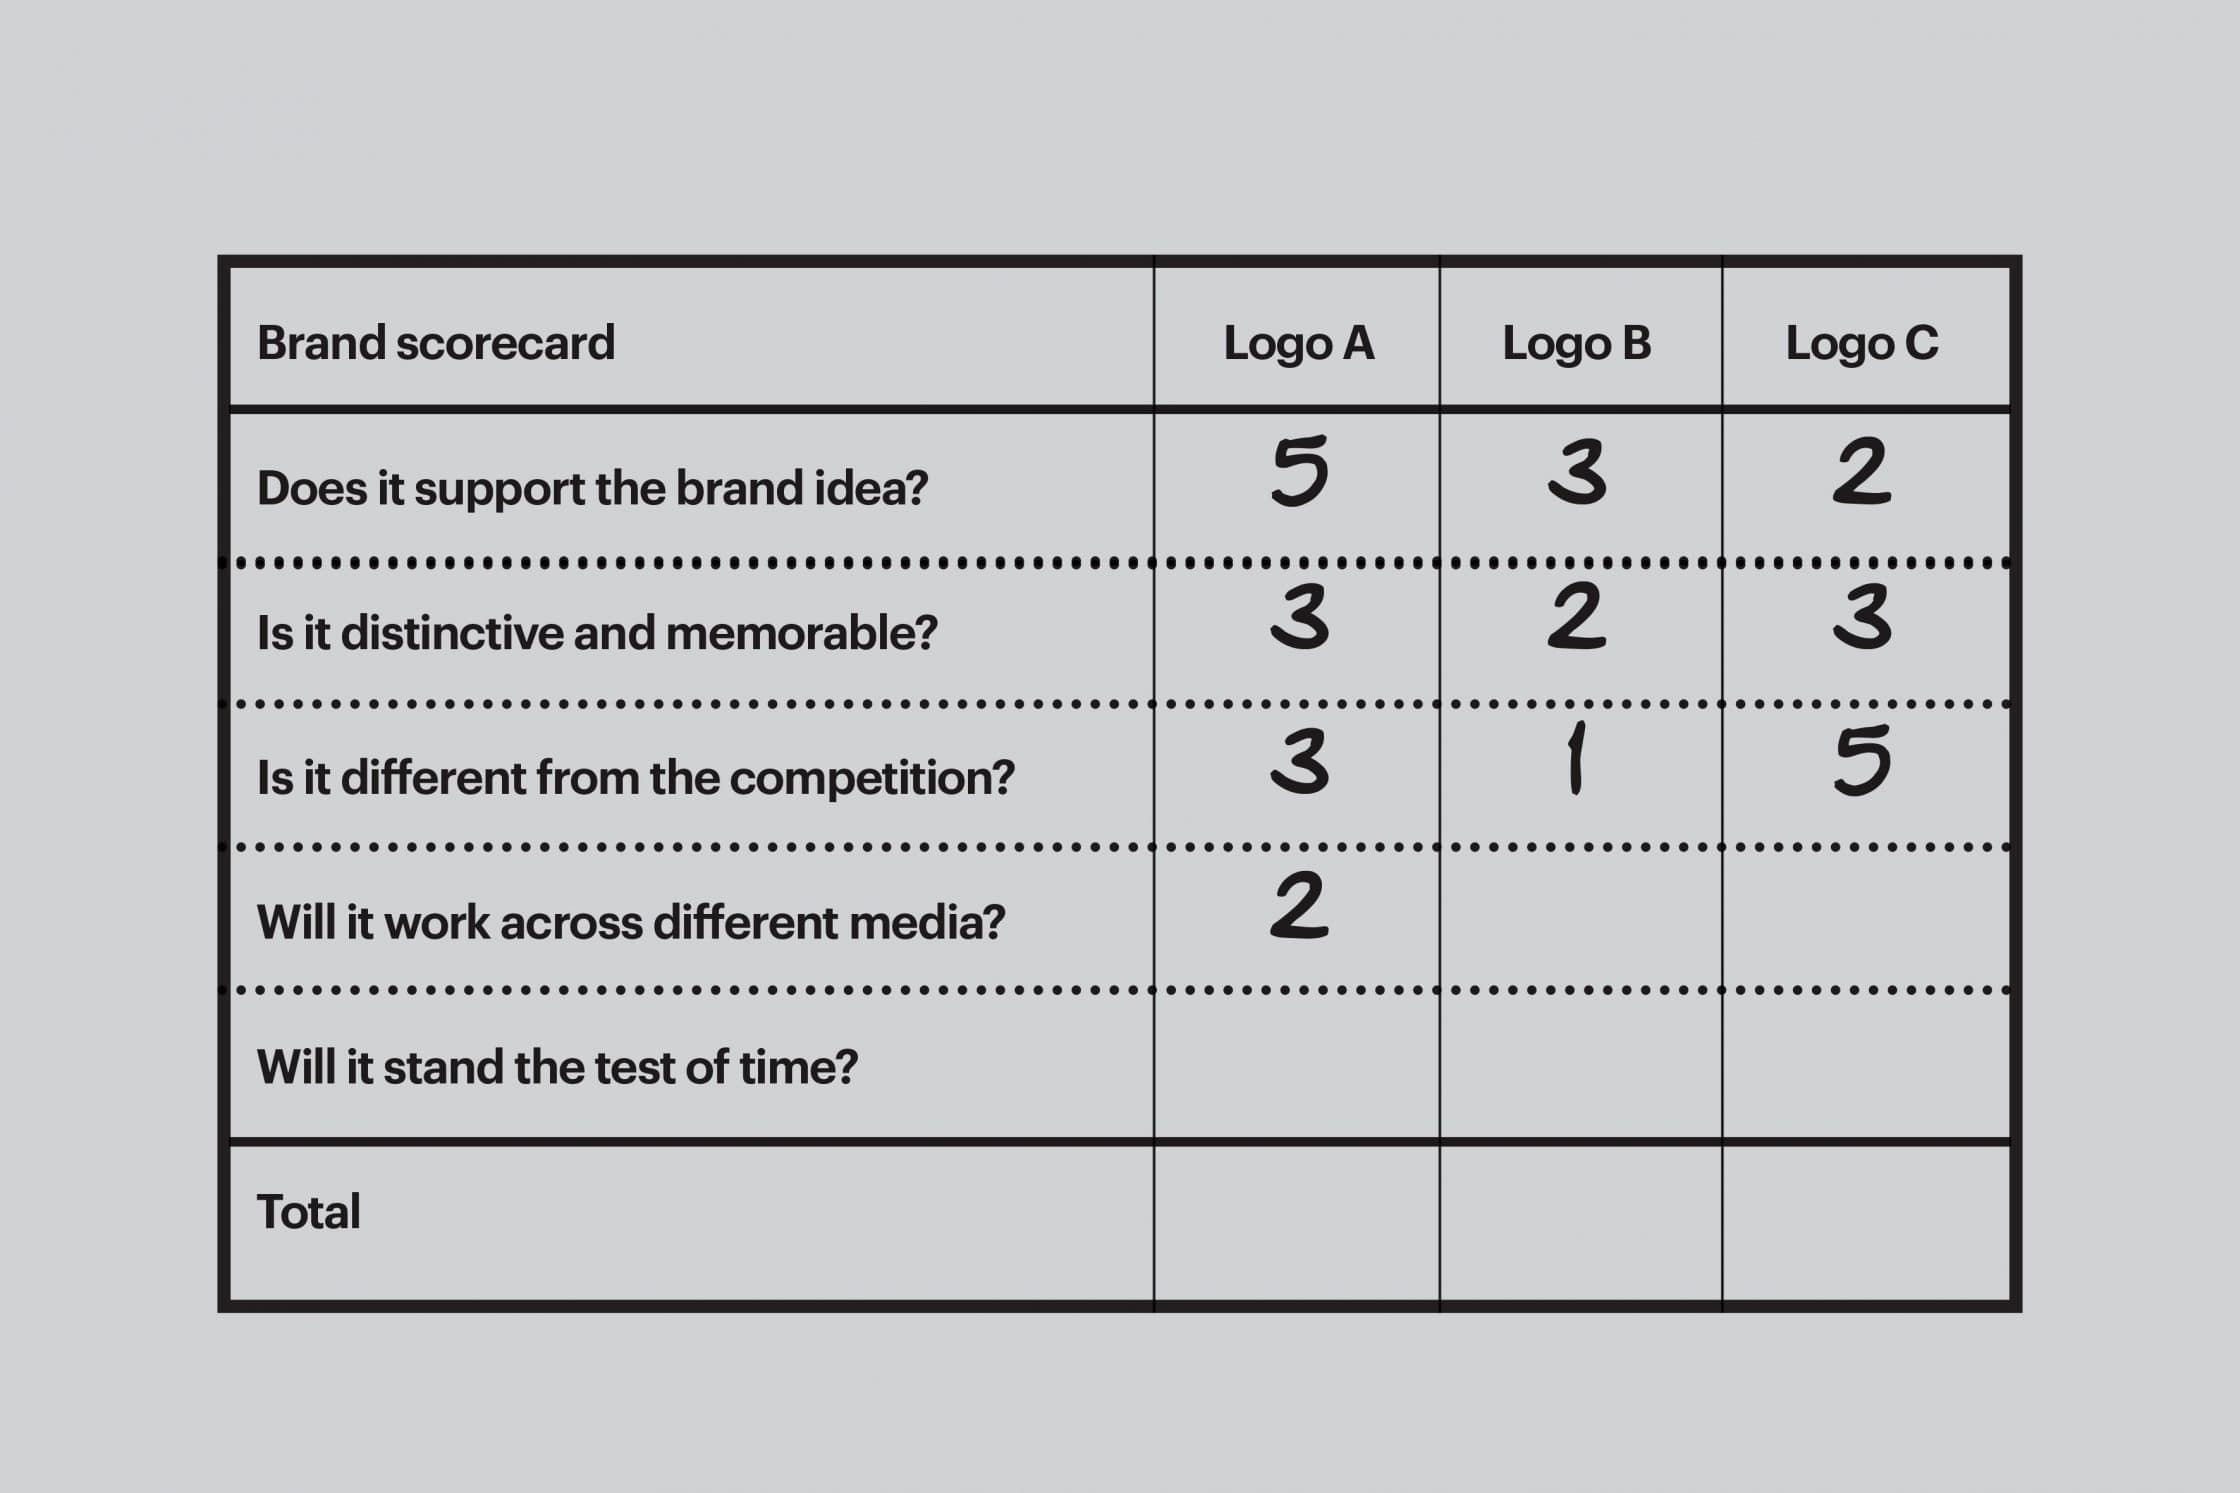 A partially filled brand scorecard to judge different logo ideas.